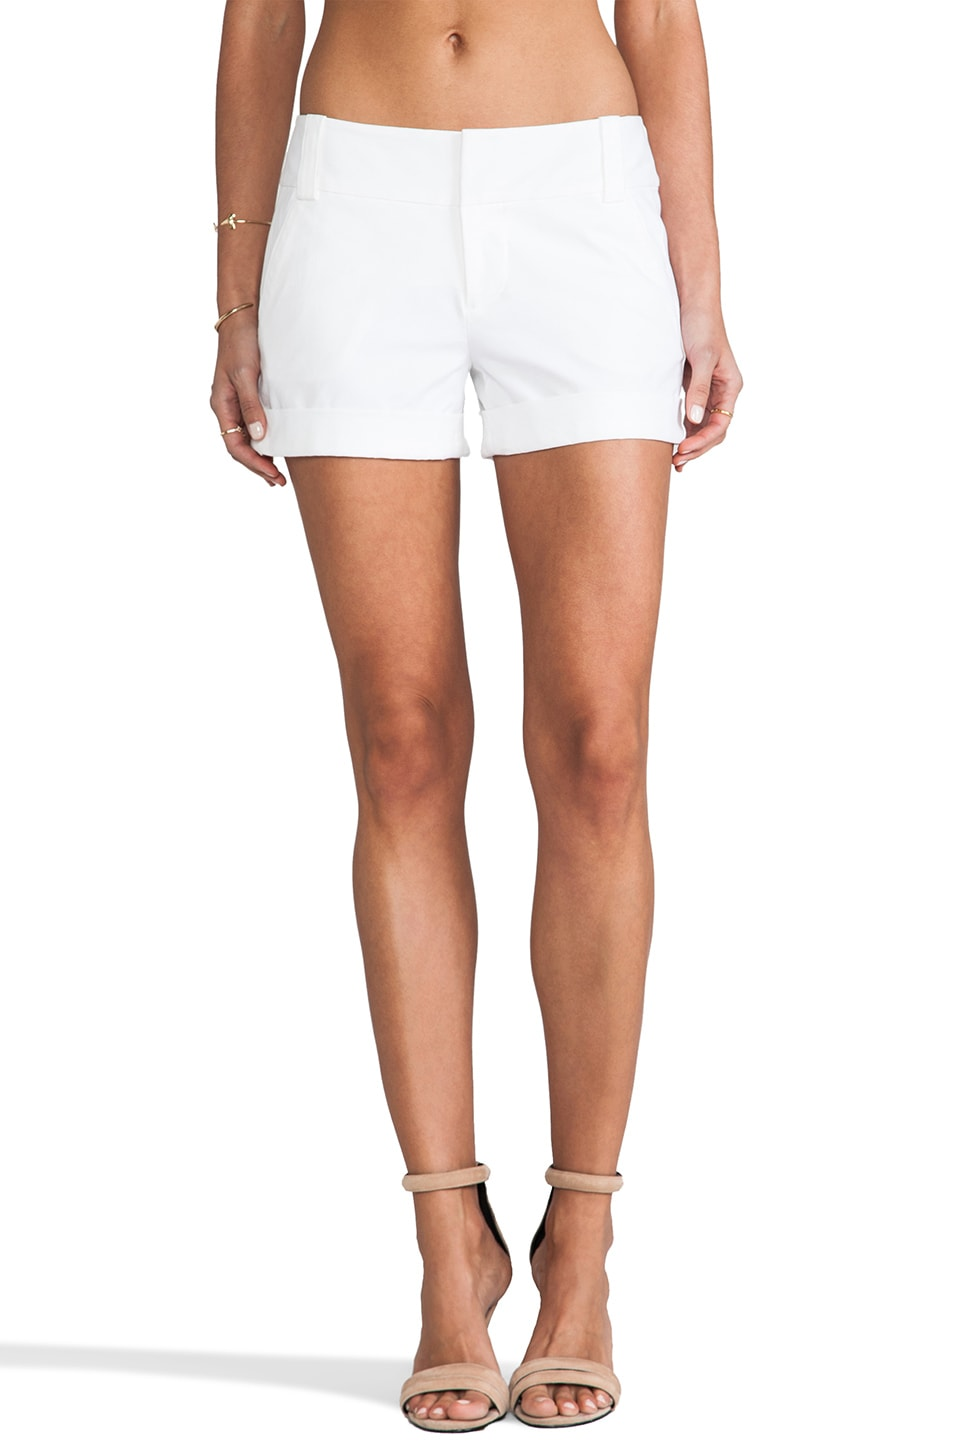 Alice + Olivia Cady Cuff Short in White